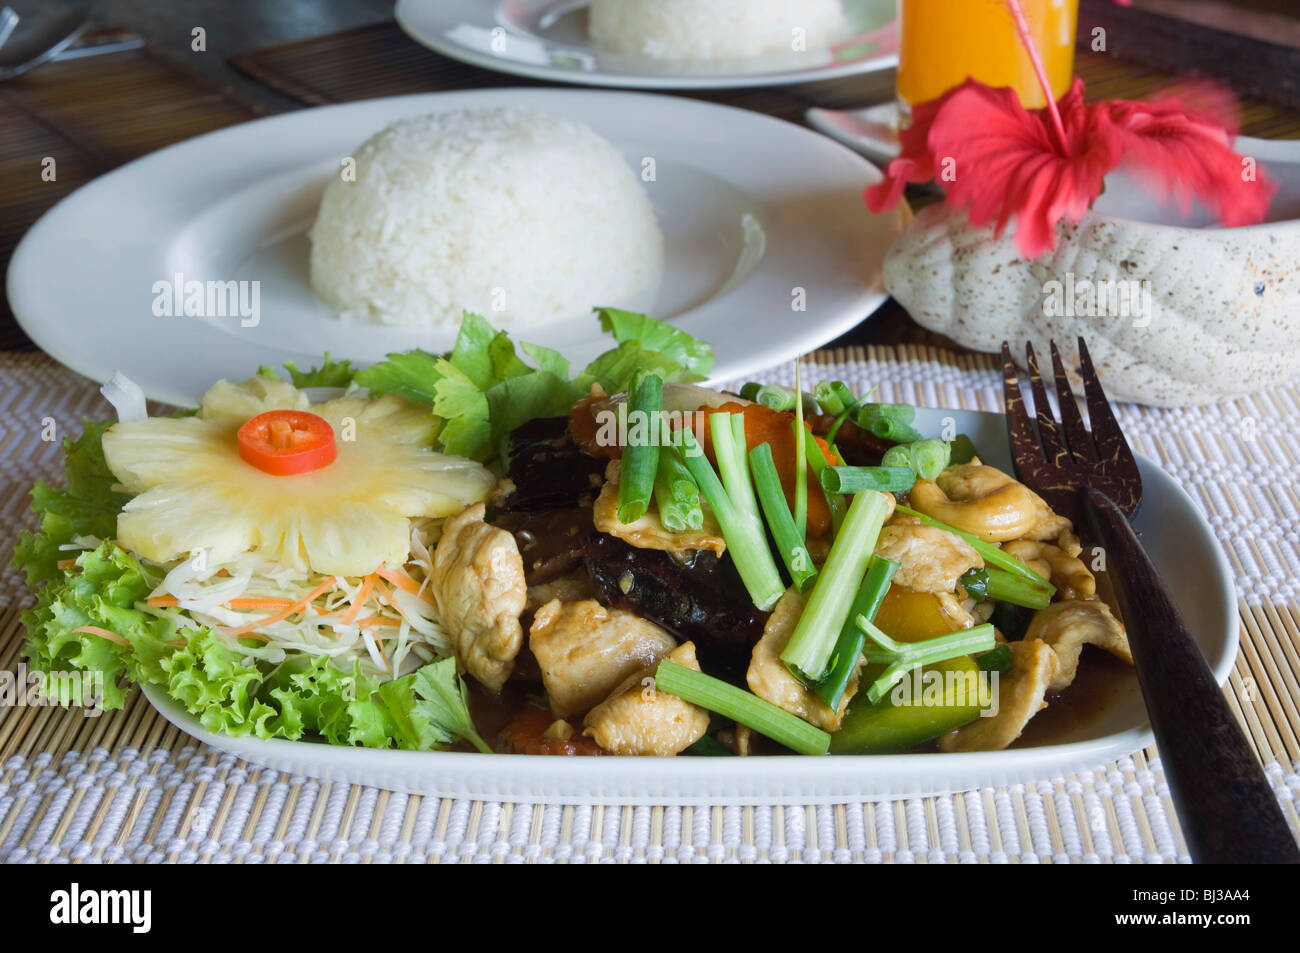 Fried chicken with cashew nuts, Thai food, Ko Lanta or Koh Lanta island, Krabi, Thailand, Asia - Stock Image